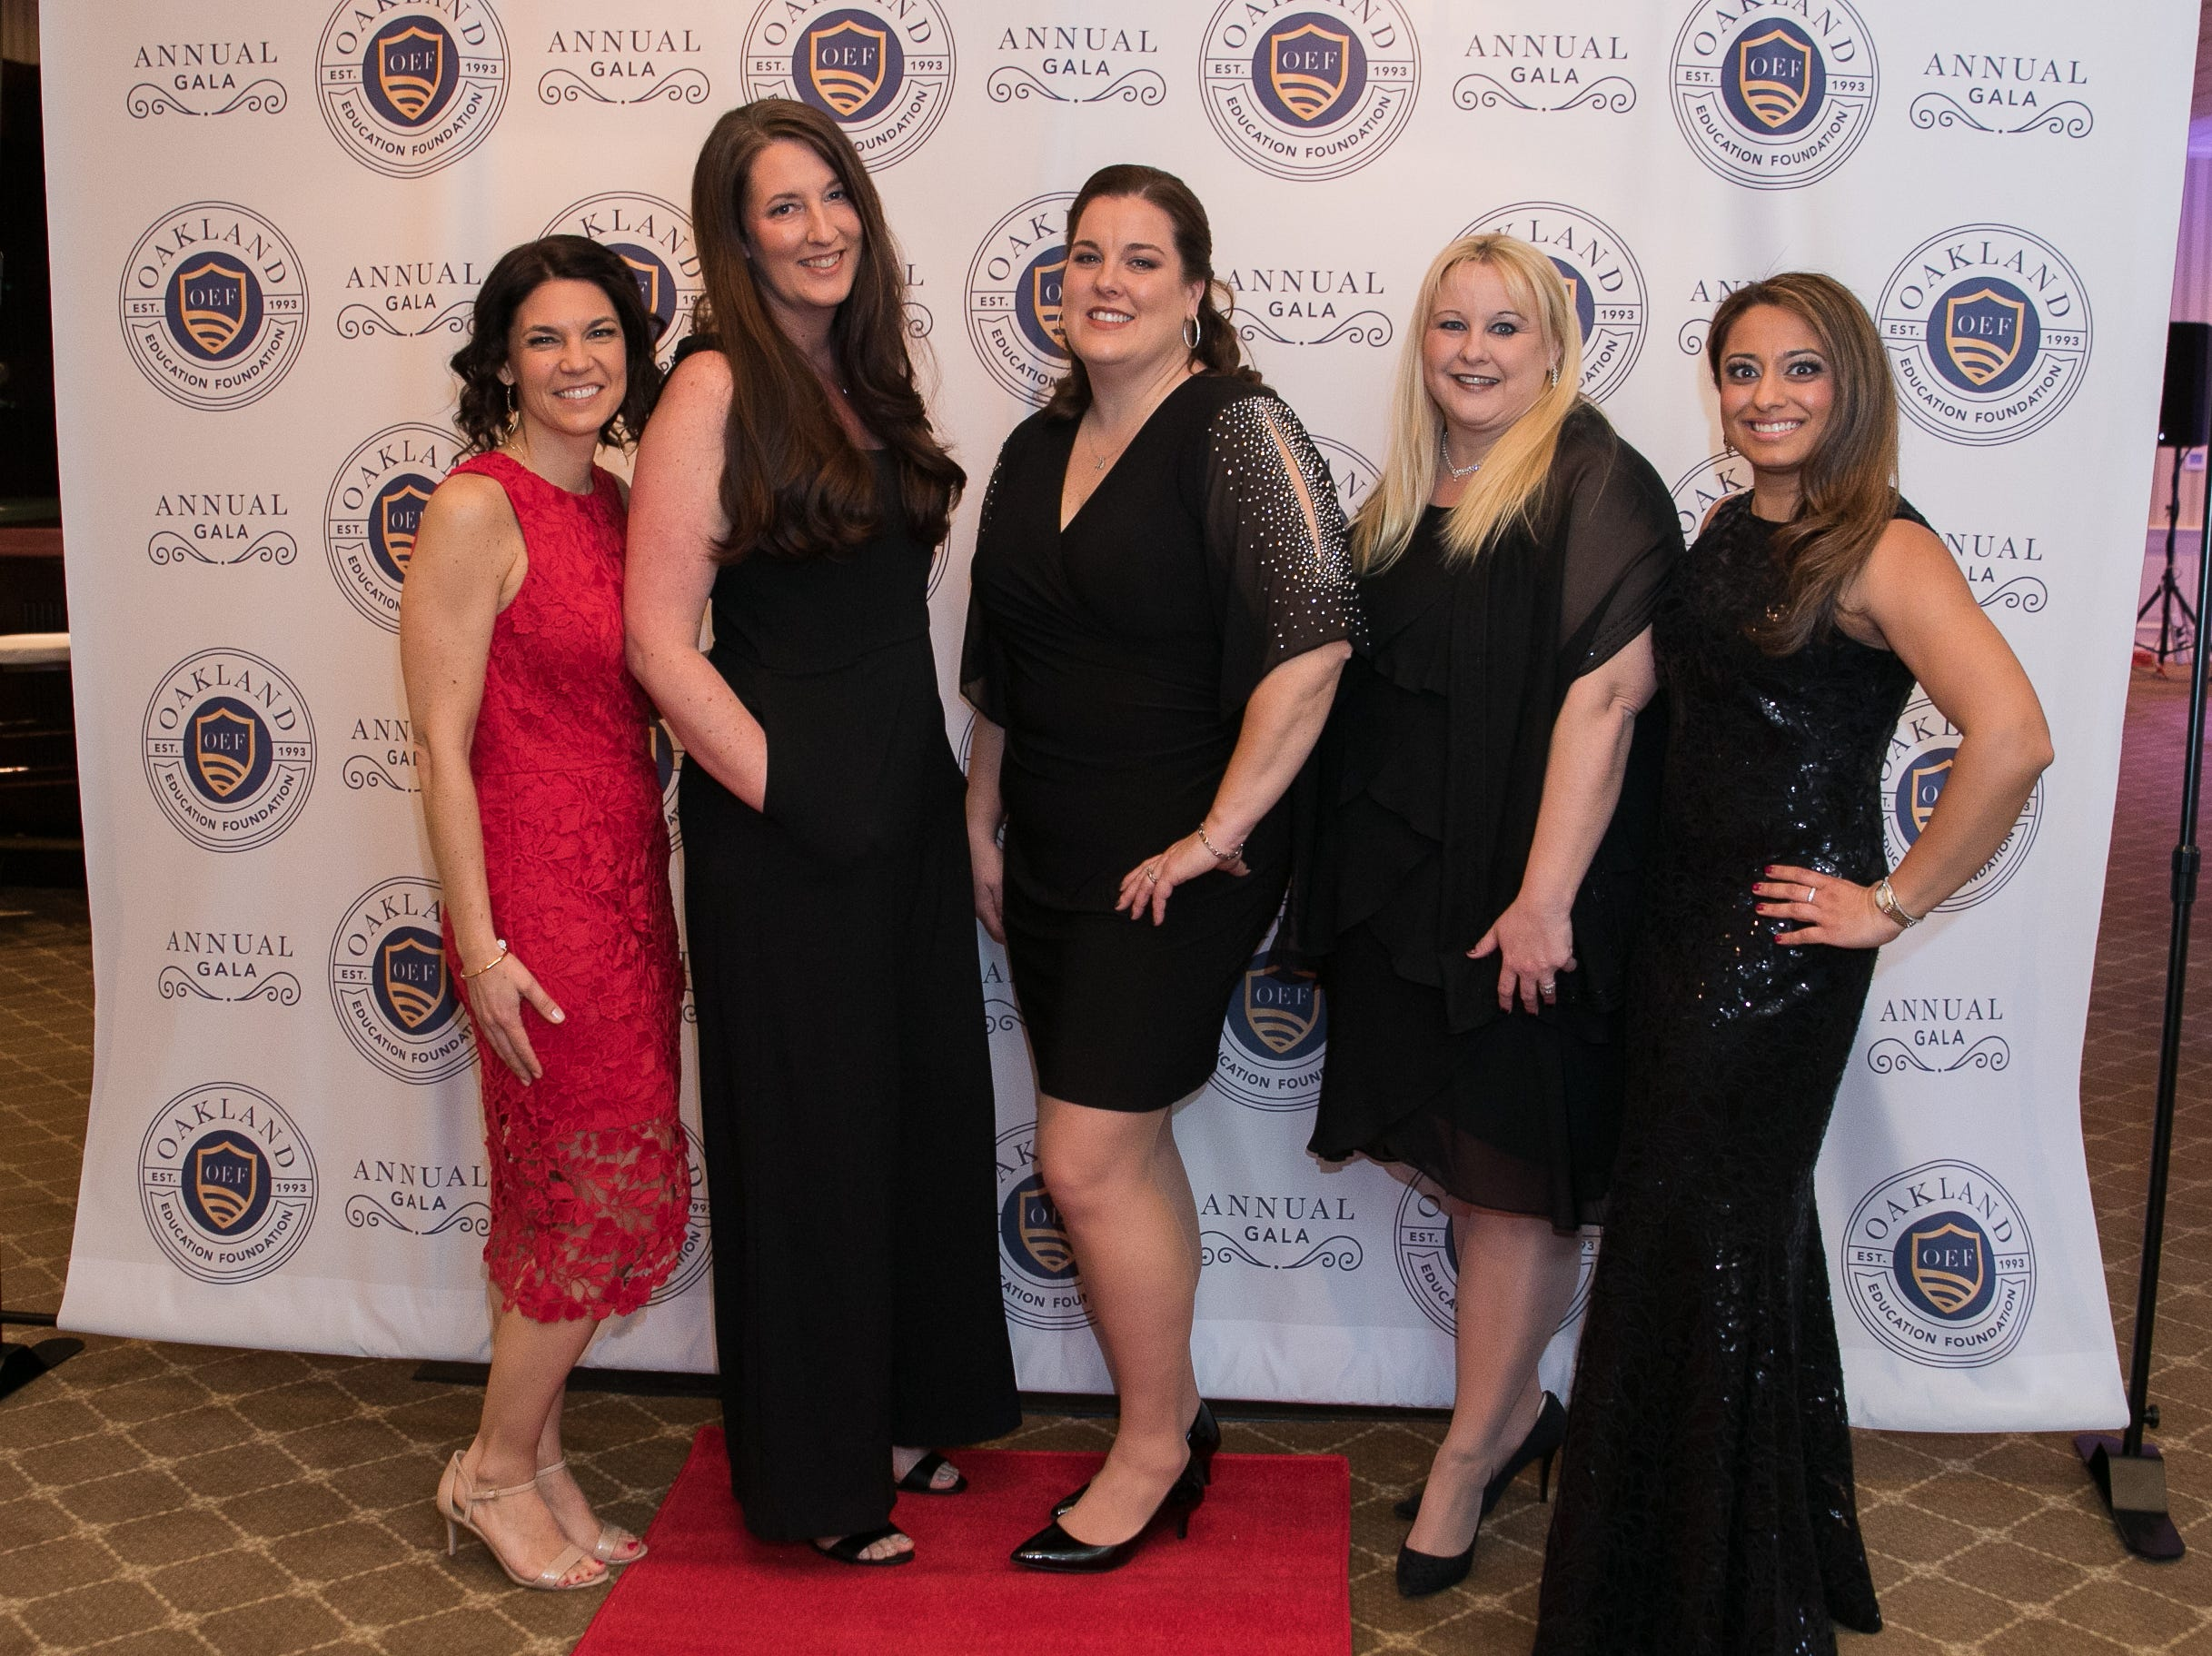 Dogwood Moms. The Oakland Education Foundation held their 25th Anniversary Casino Night Gala at Preakness Hills Country Club in Wayne. 03/16/2019